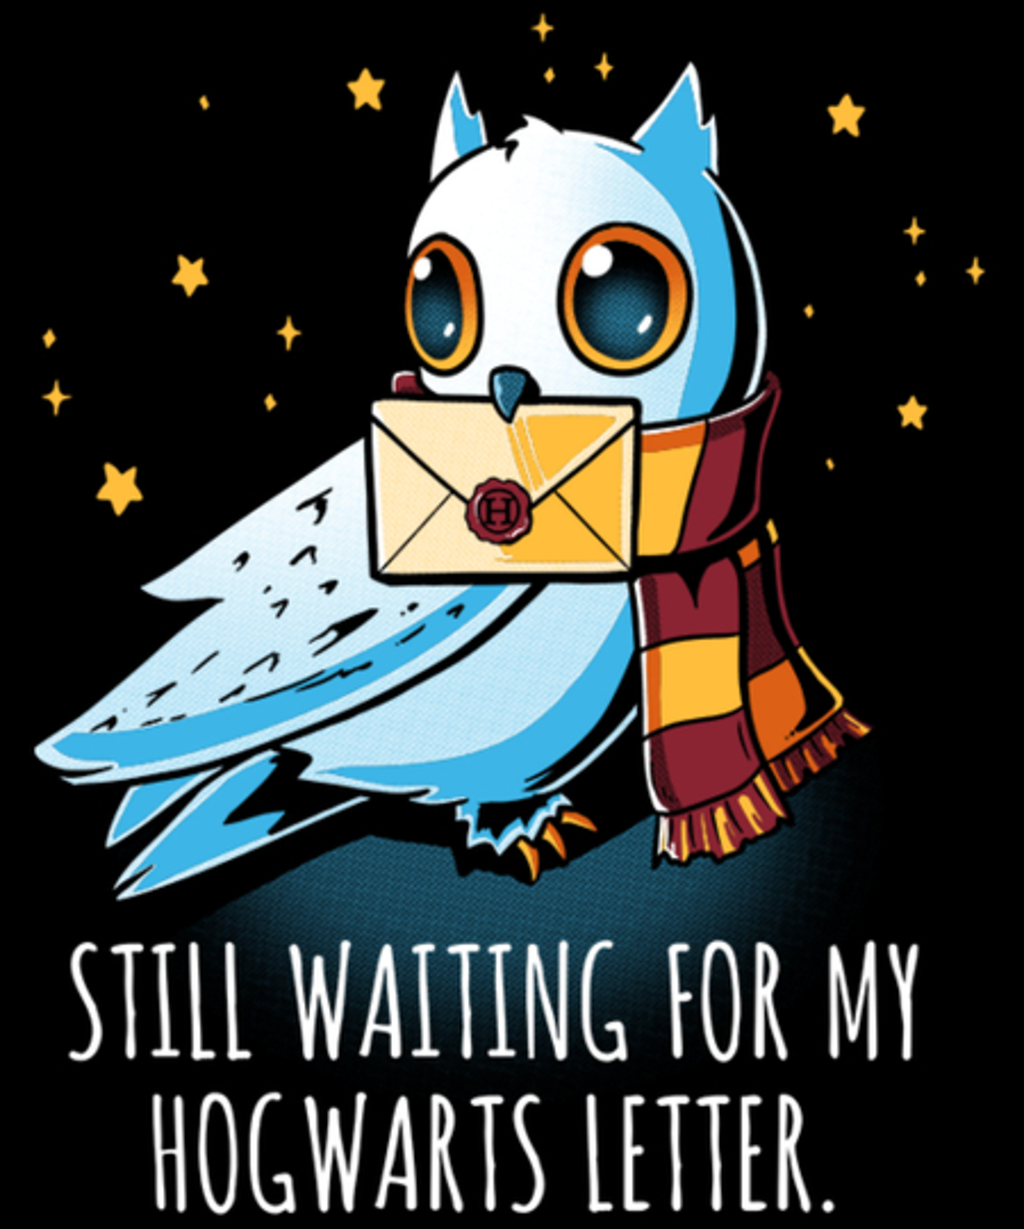 Qwertee: Waiting for my Letter